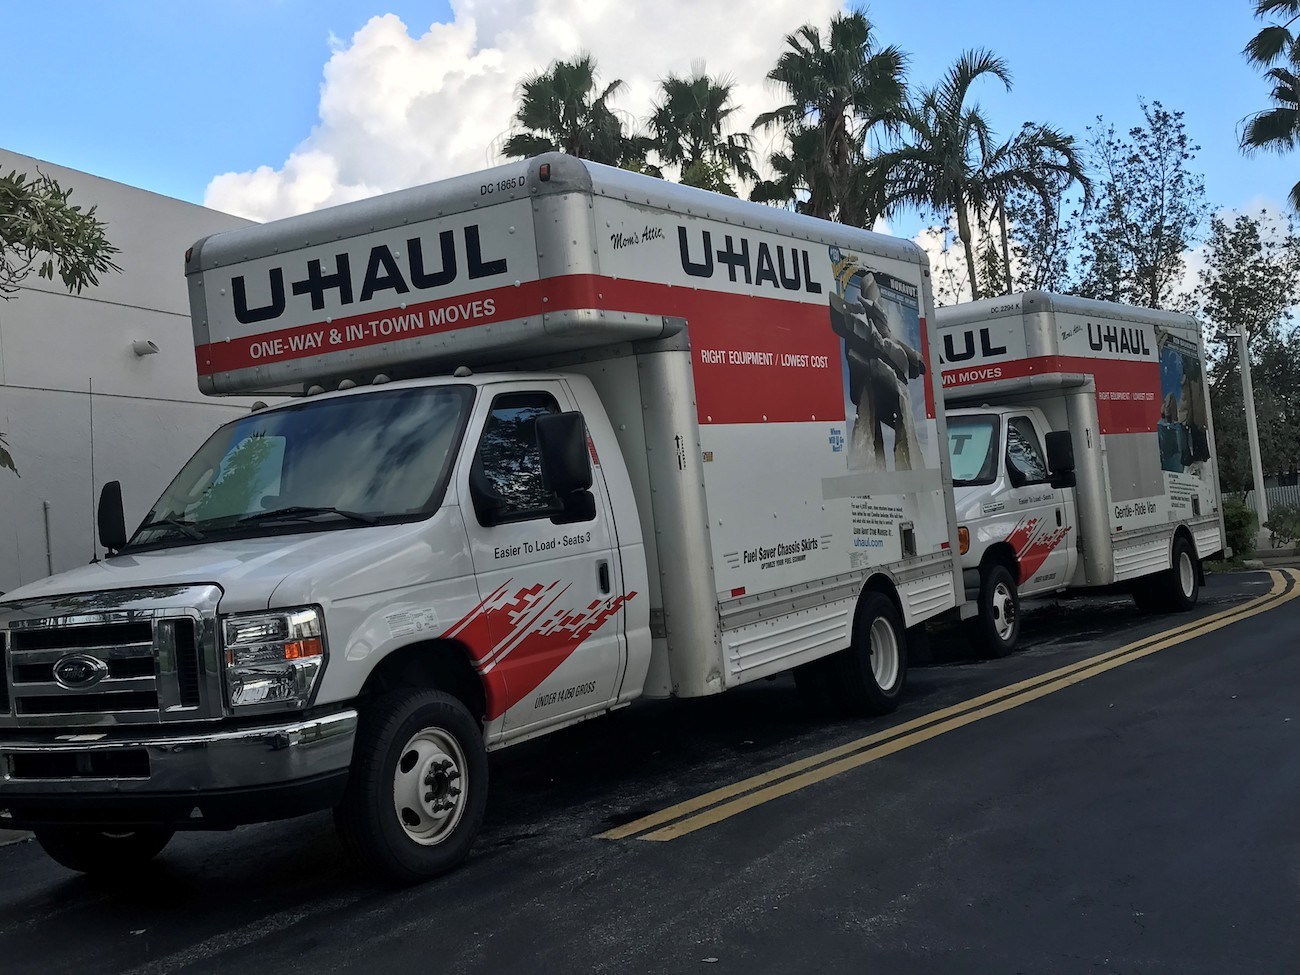 Aereos - Uhaul trucks are being used for transporting relief items from drop off locations to the airport.